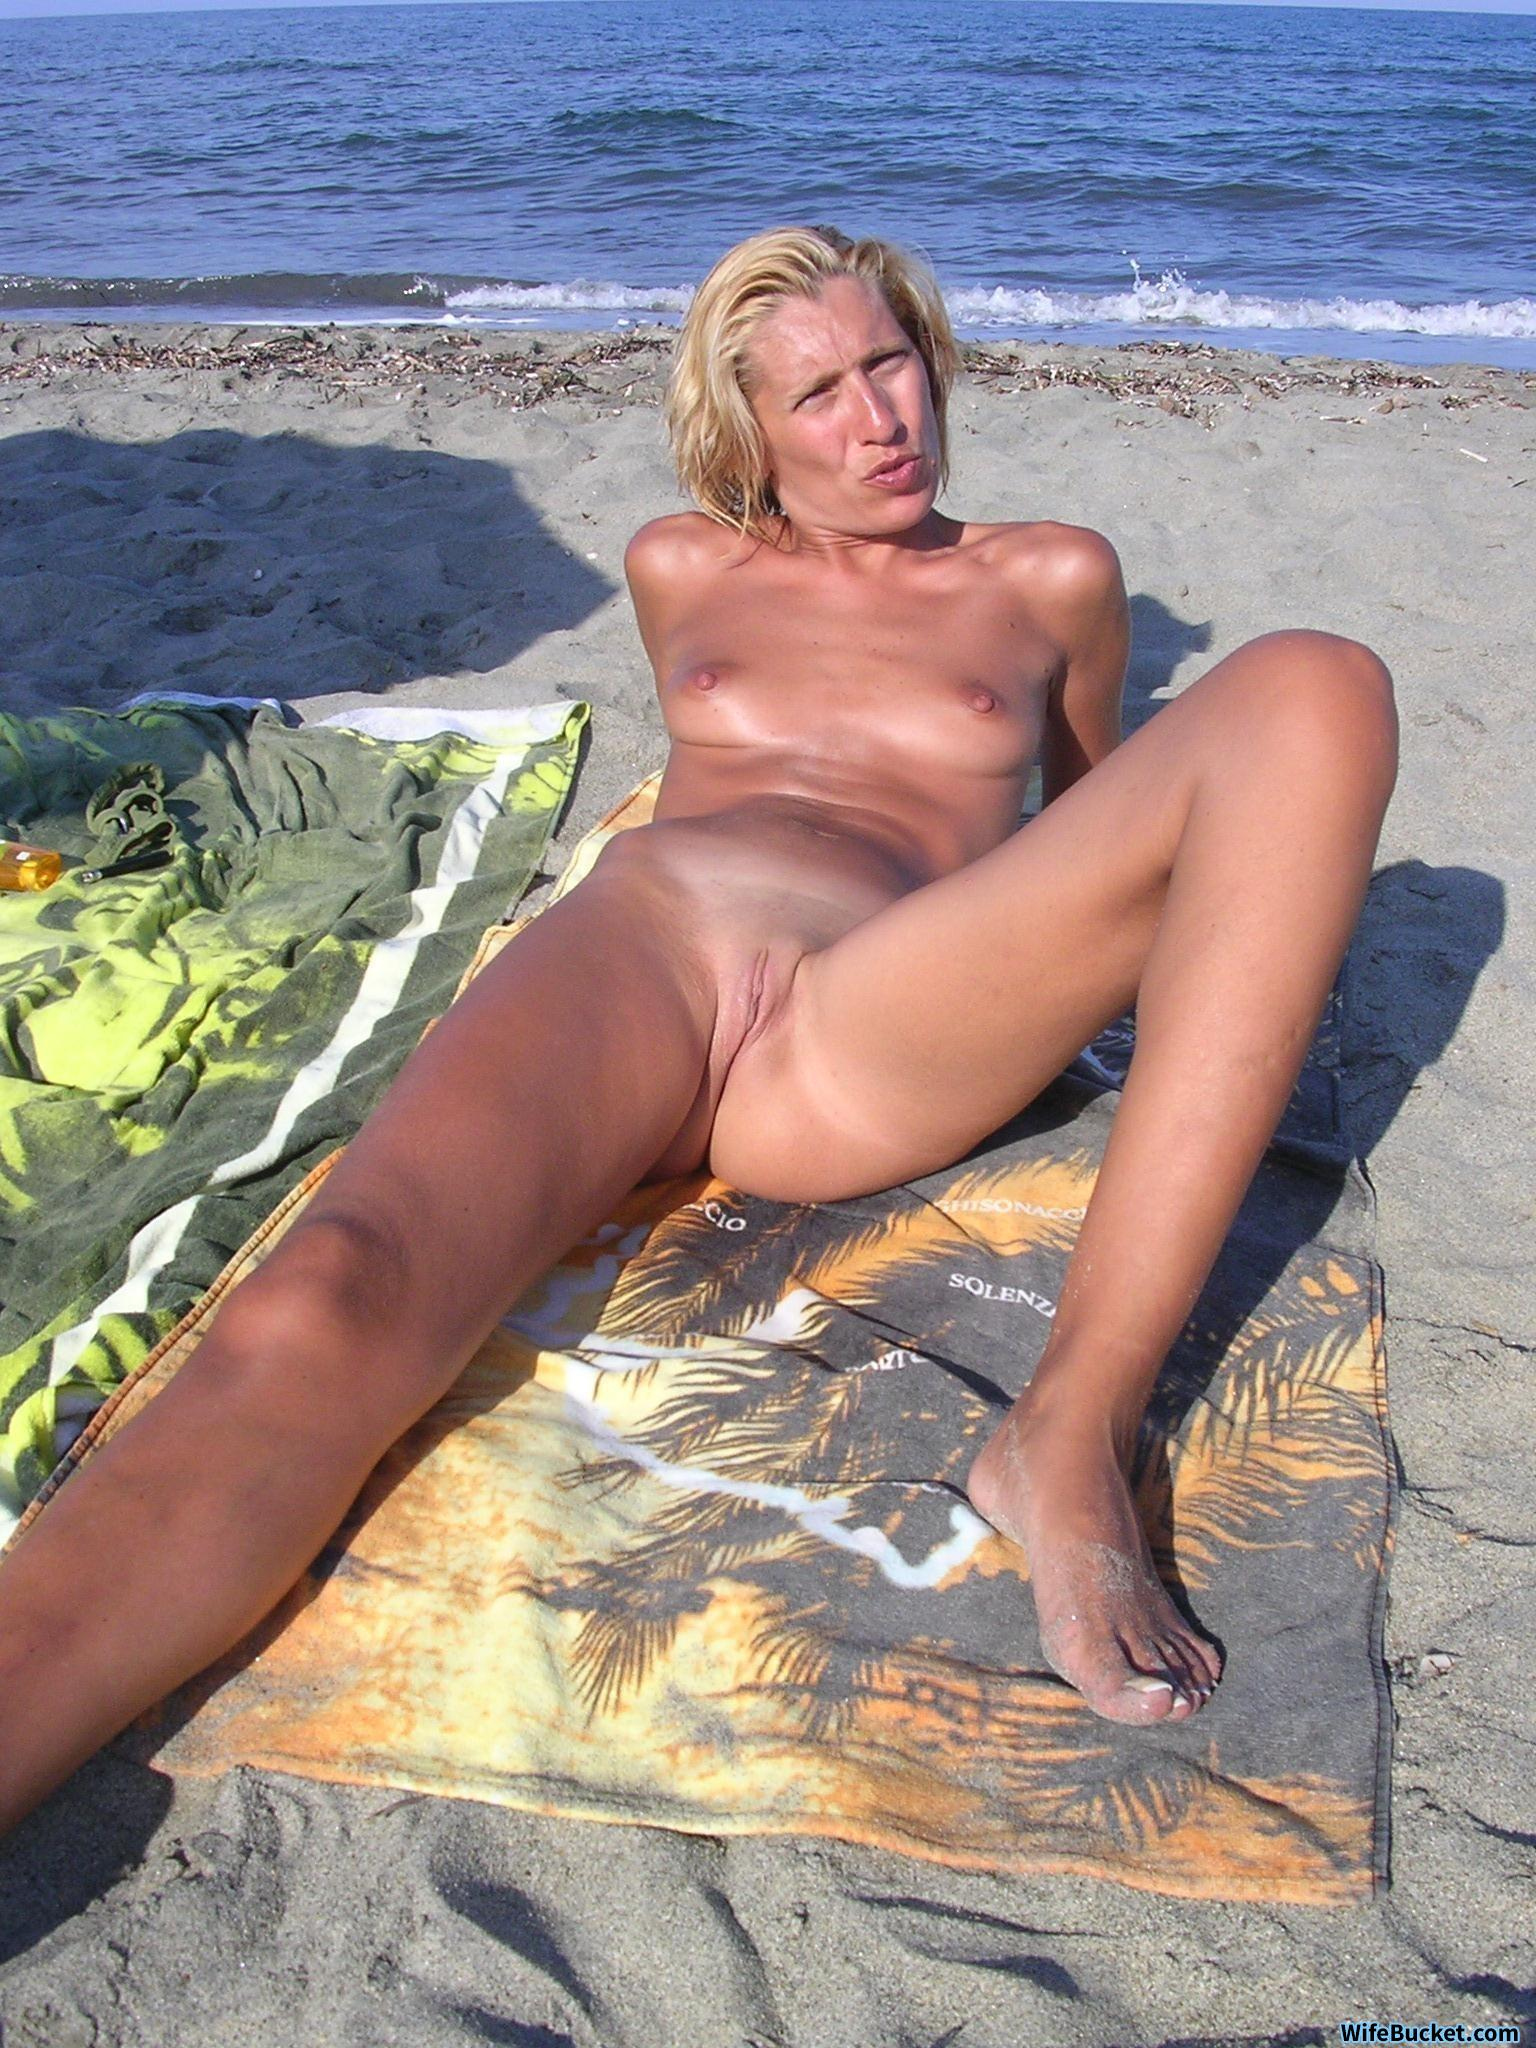 Hot nude wife on beach charming question